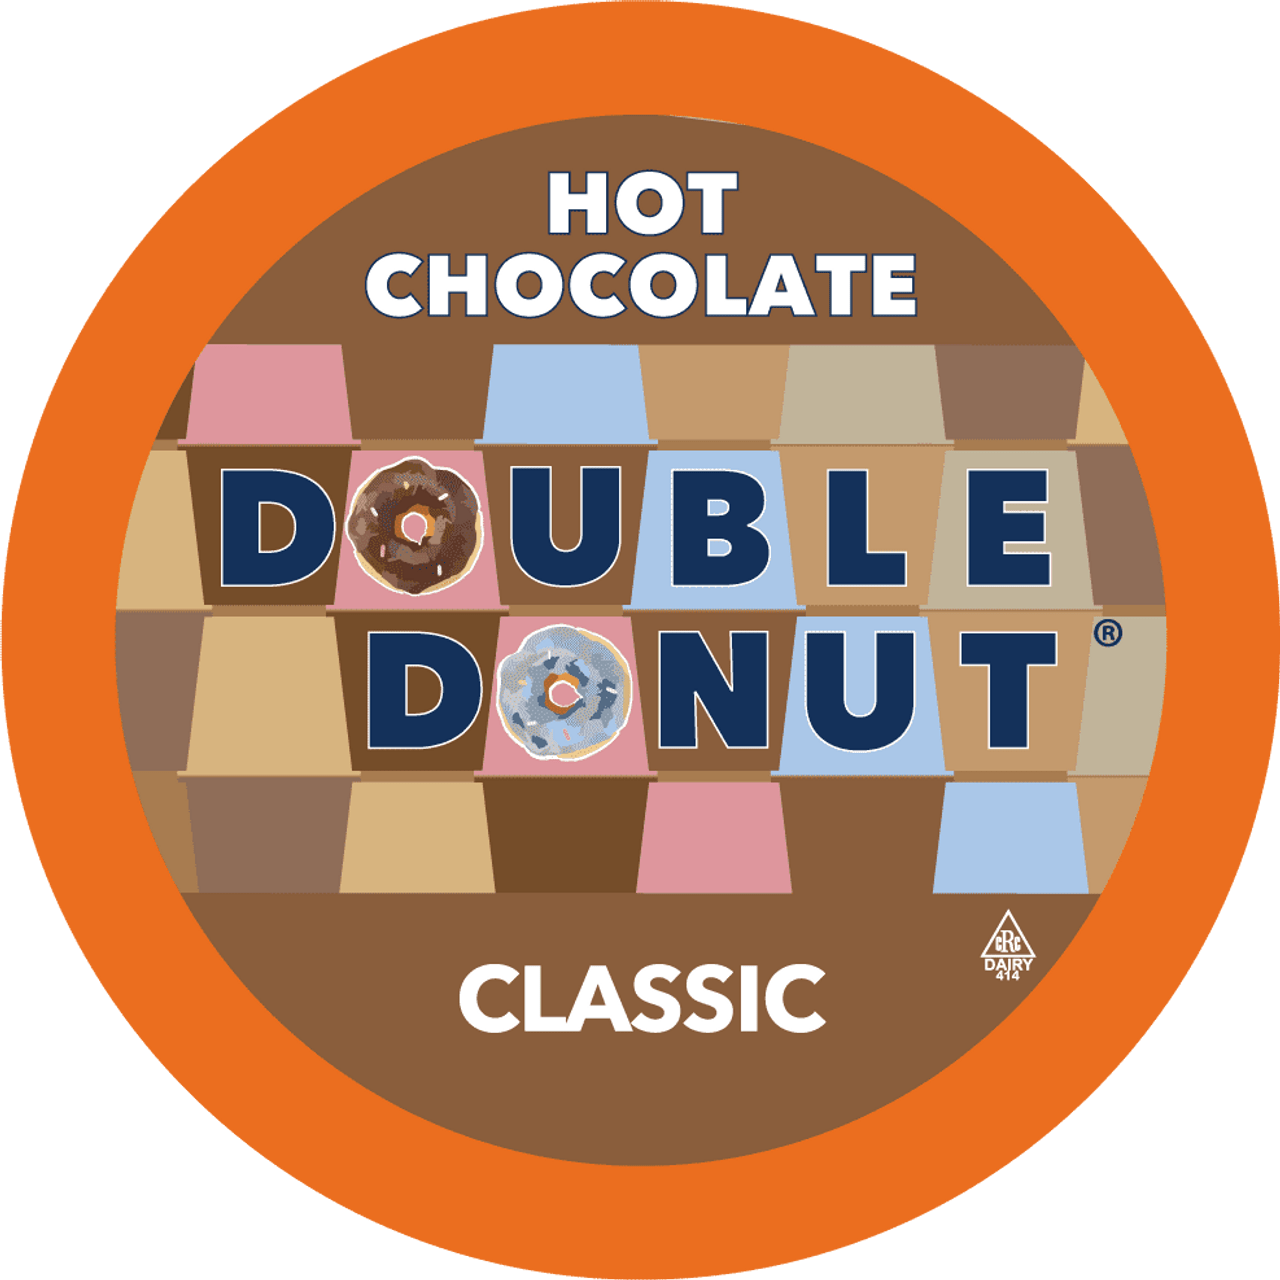 Classic Hot Chocolate by Double Donut